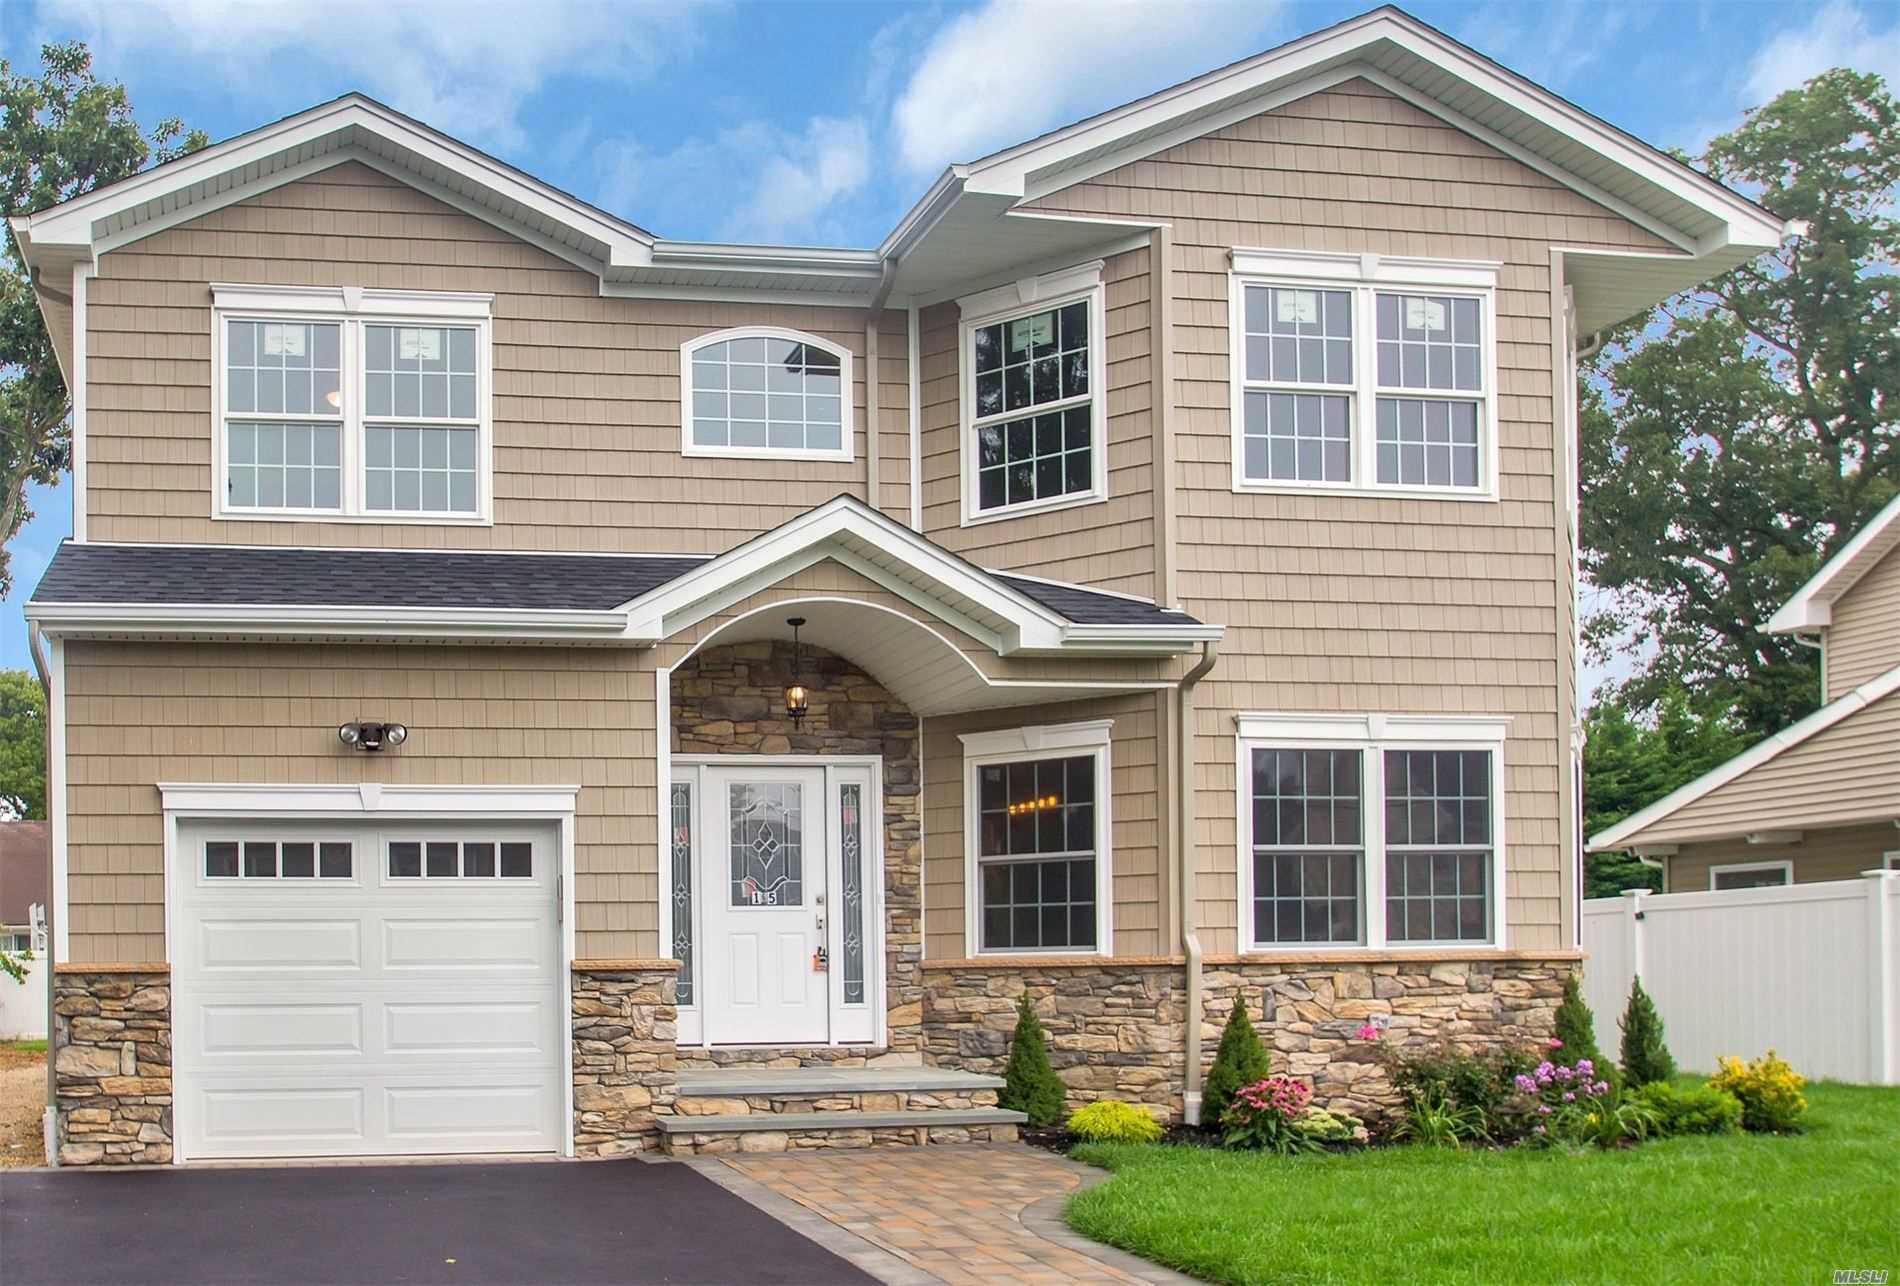 3315 Seneca Pl - Wantagh, New York